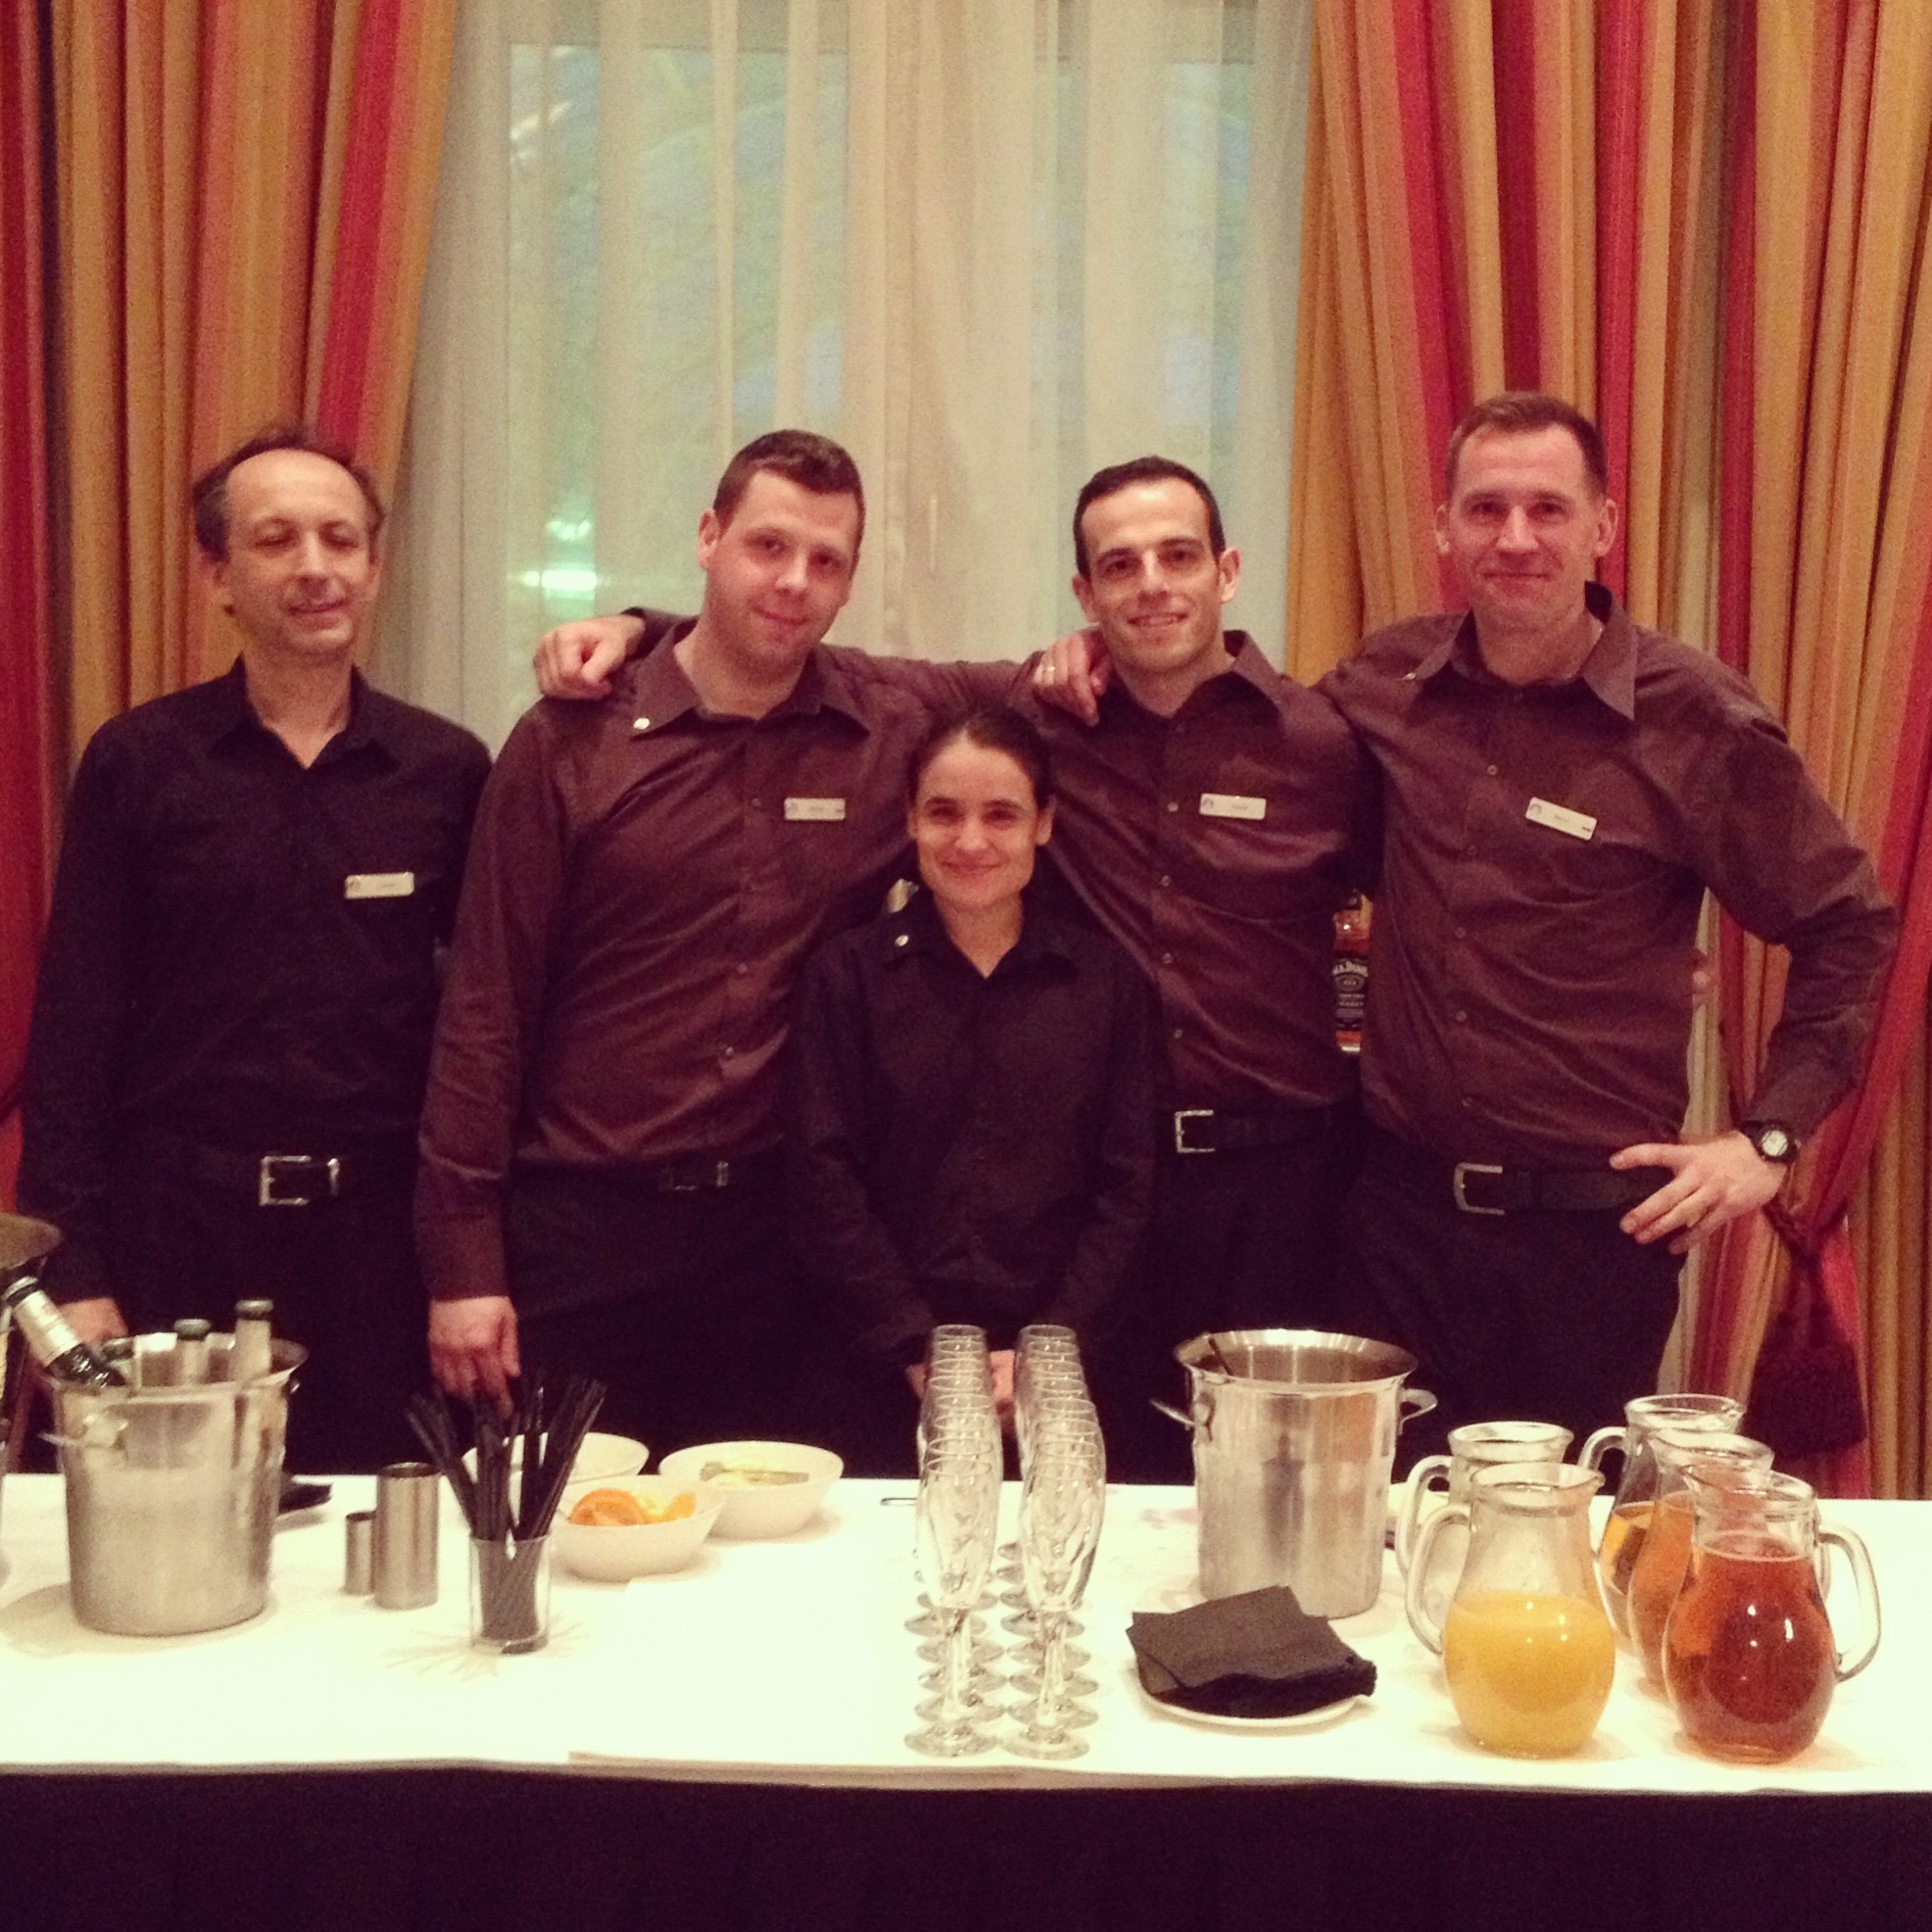 The lovely hotel staff